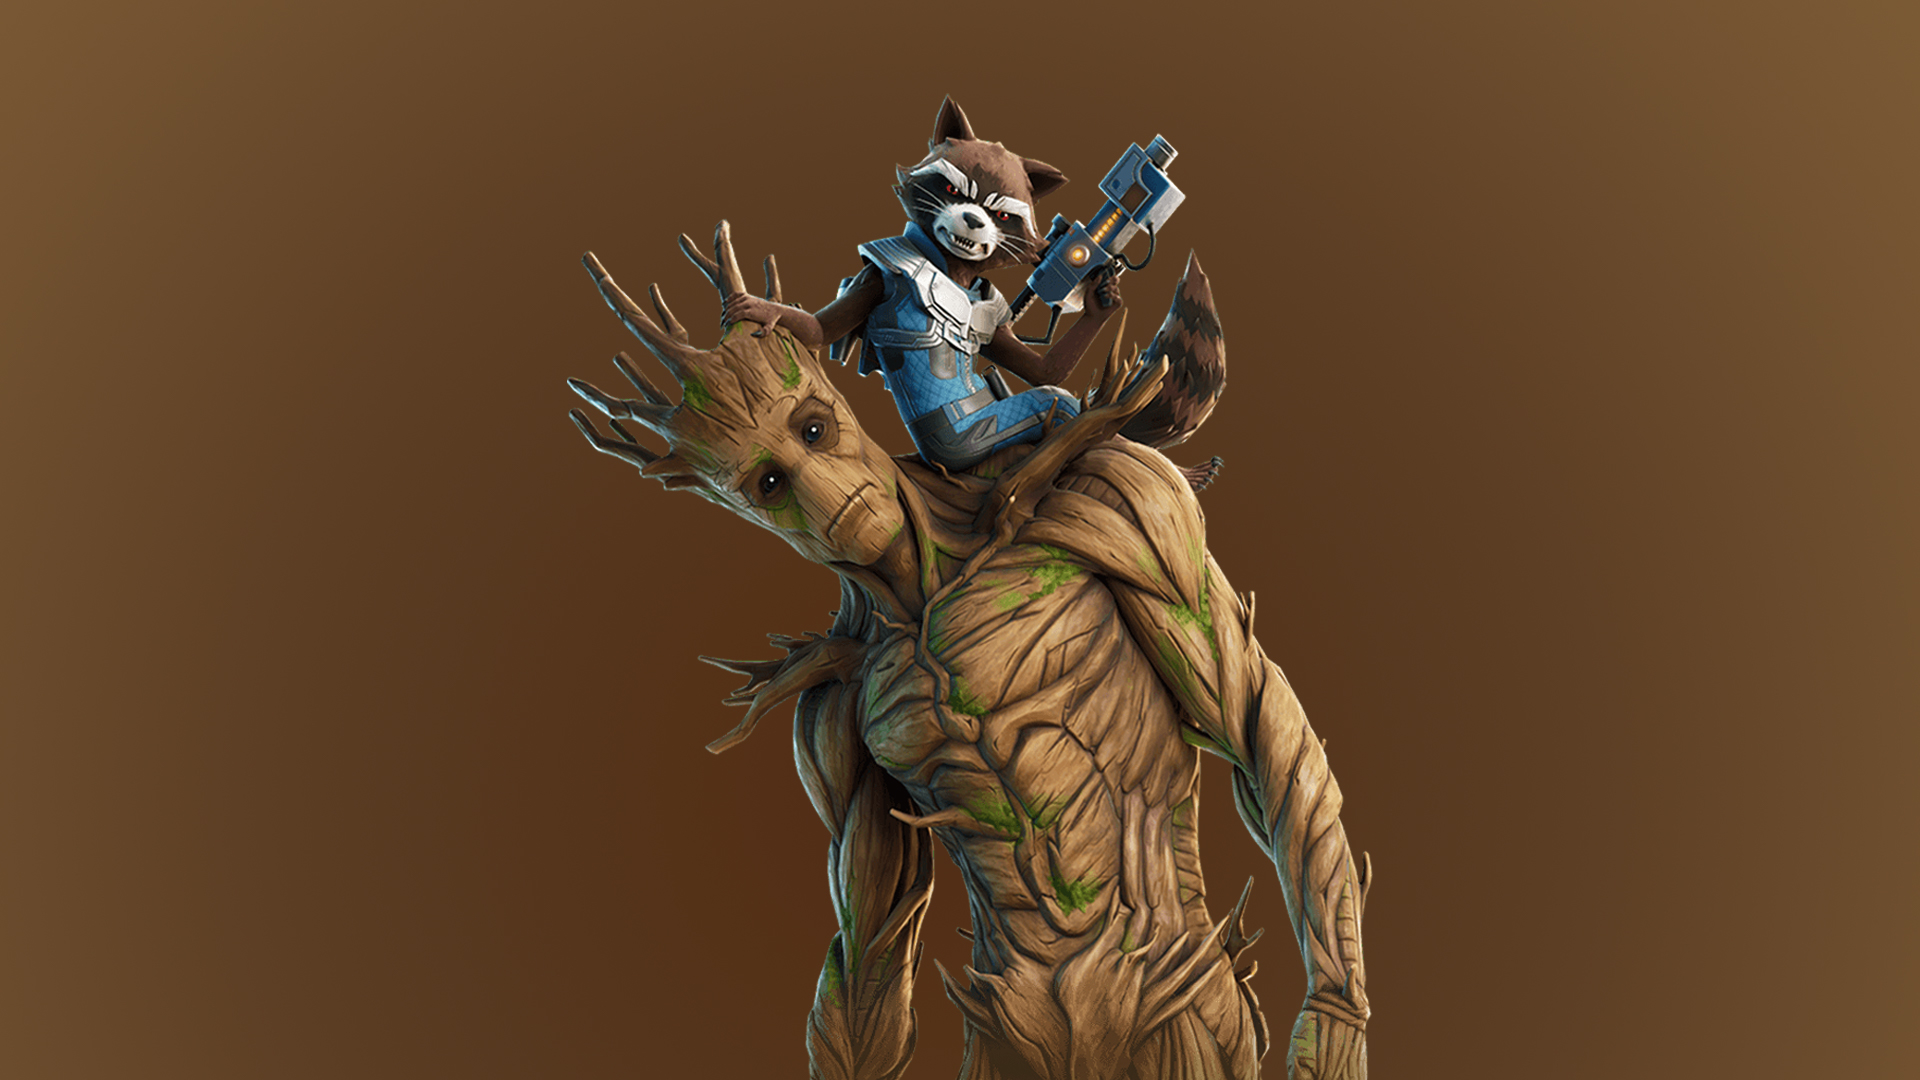 Groot Rocket Fortnite Wallpaper Hd Games 4k Wallpapers Images Photos And Background